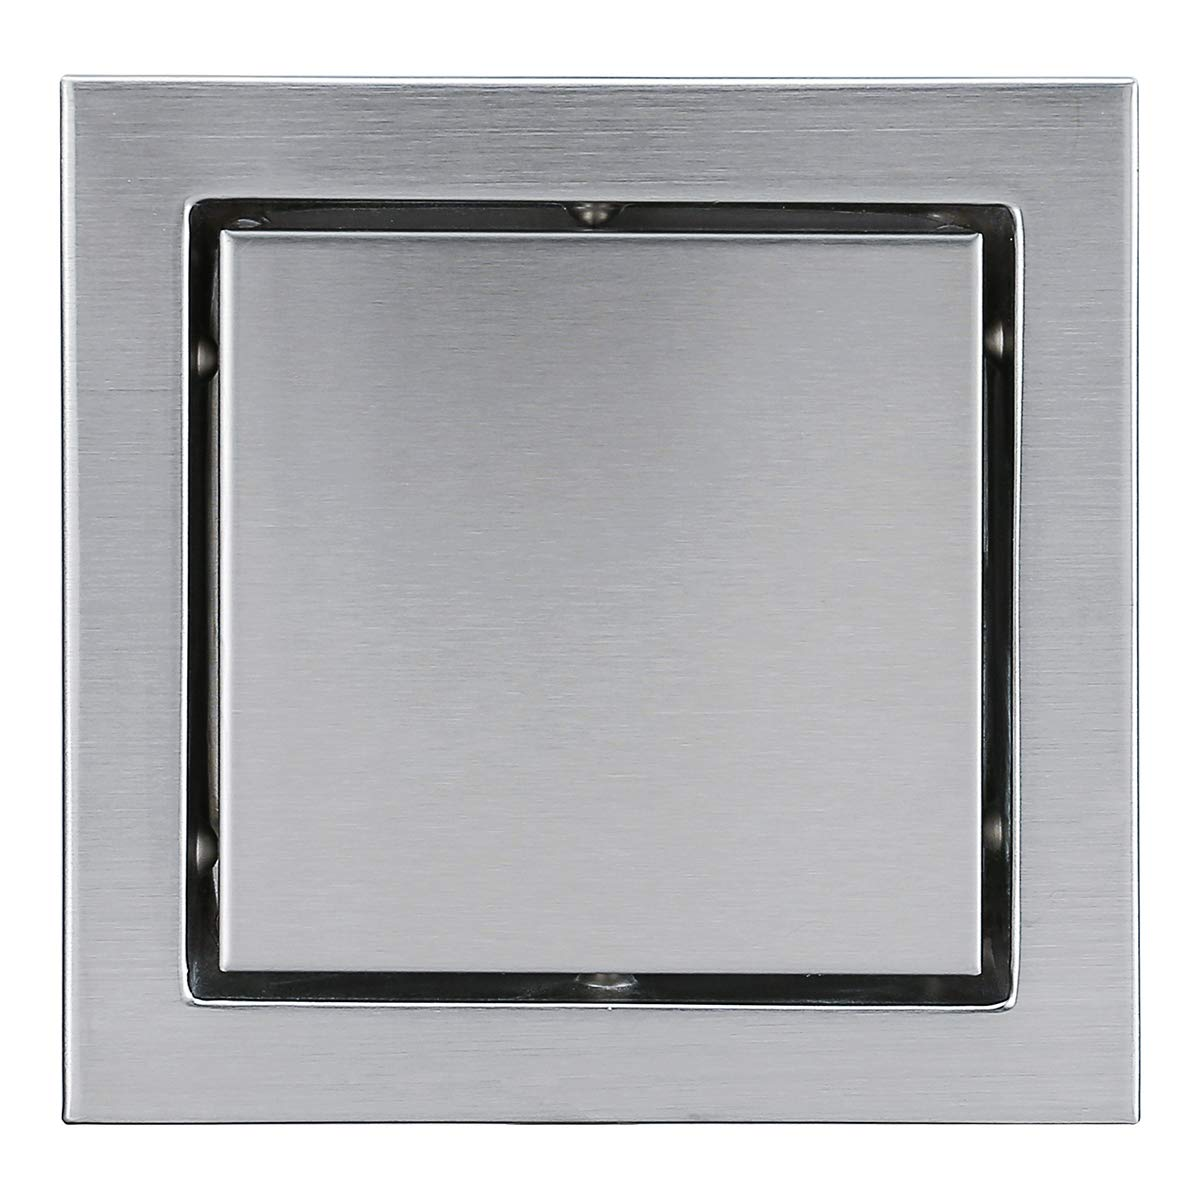 RANDOM 6-inch SUS304 Stainless Steel Square Shower Floor Drain with Tile Insert Grate Removable Multipurpose Invisible Look or Flat Cover,Brushed Stainless. (Wide-brimmed)